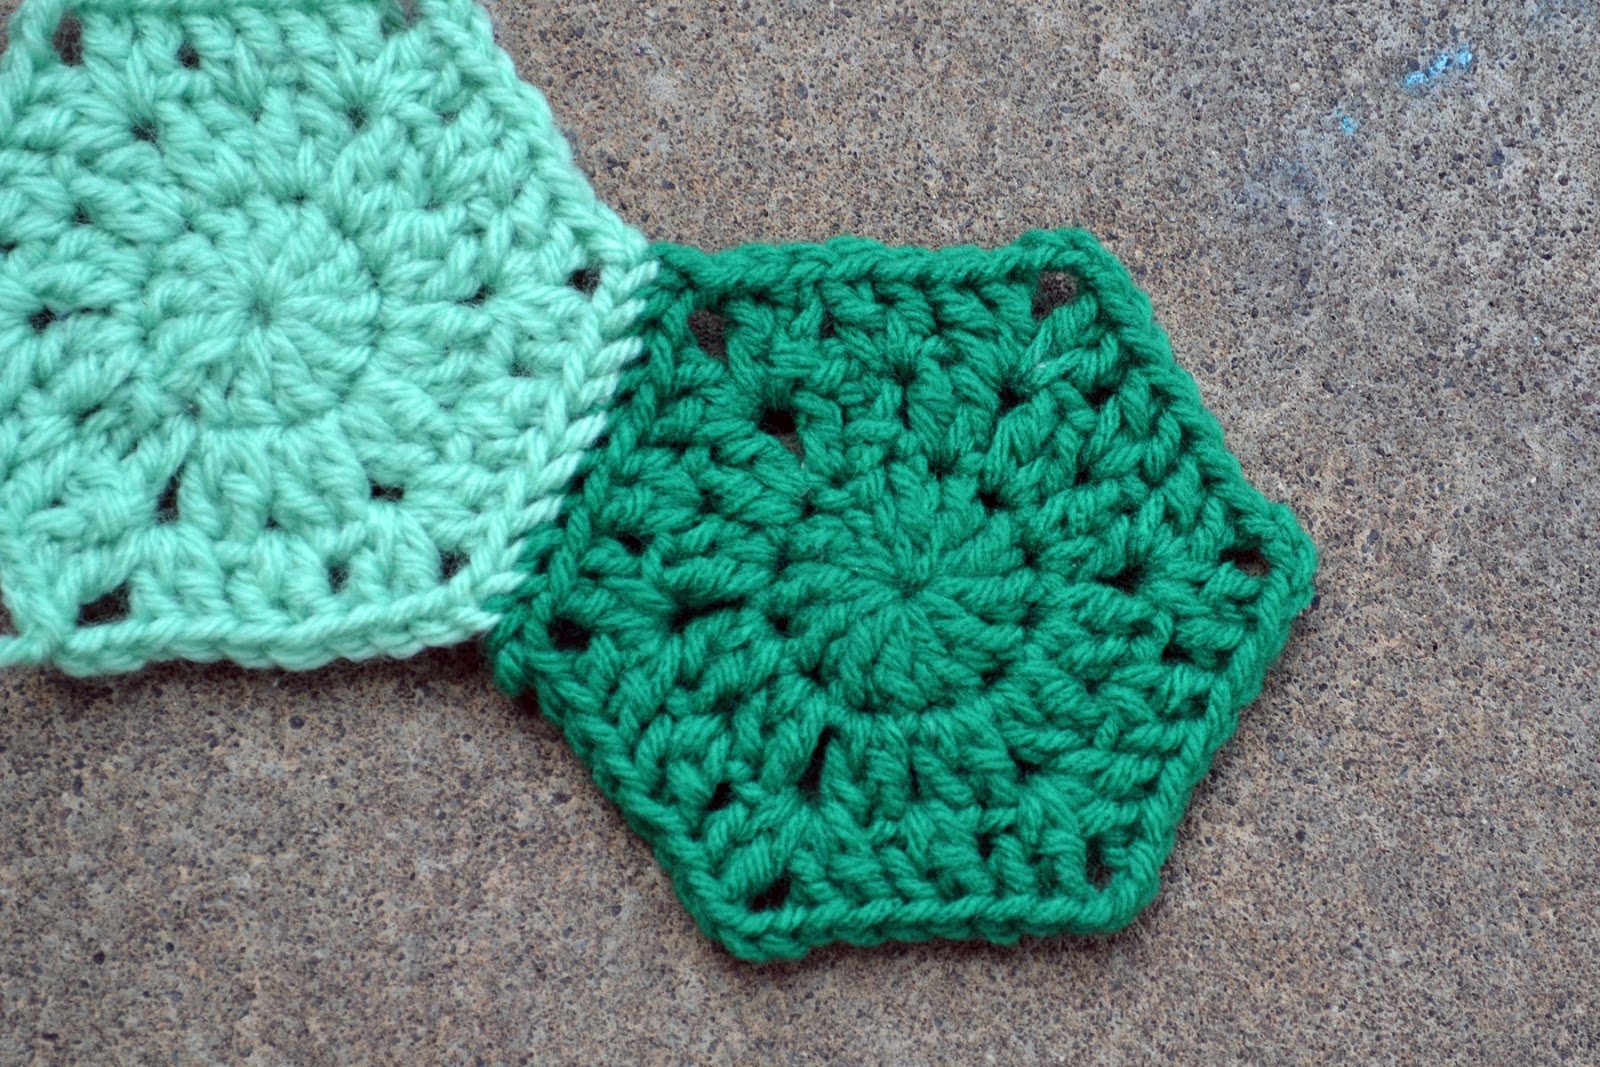 Crochet in Color: Hexagons and More